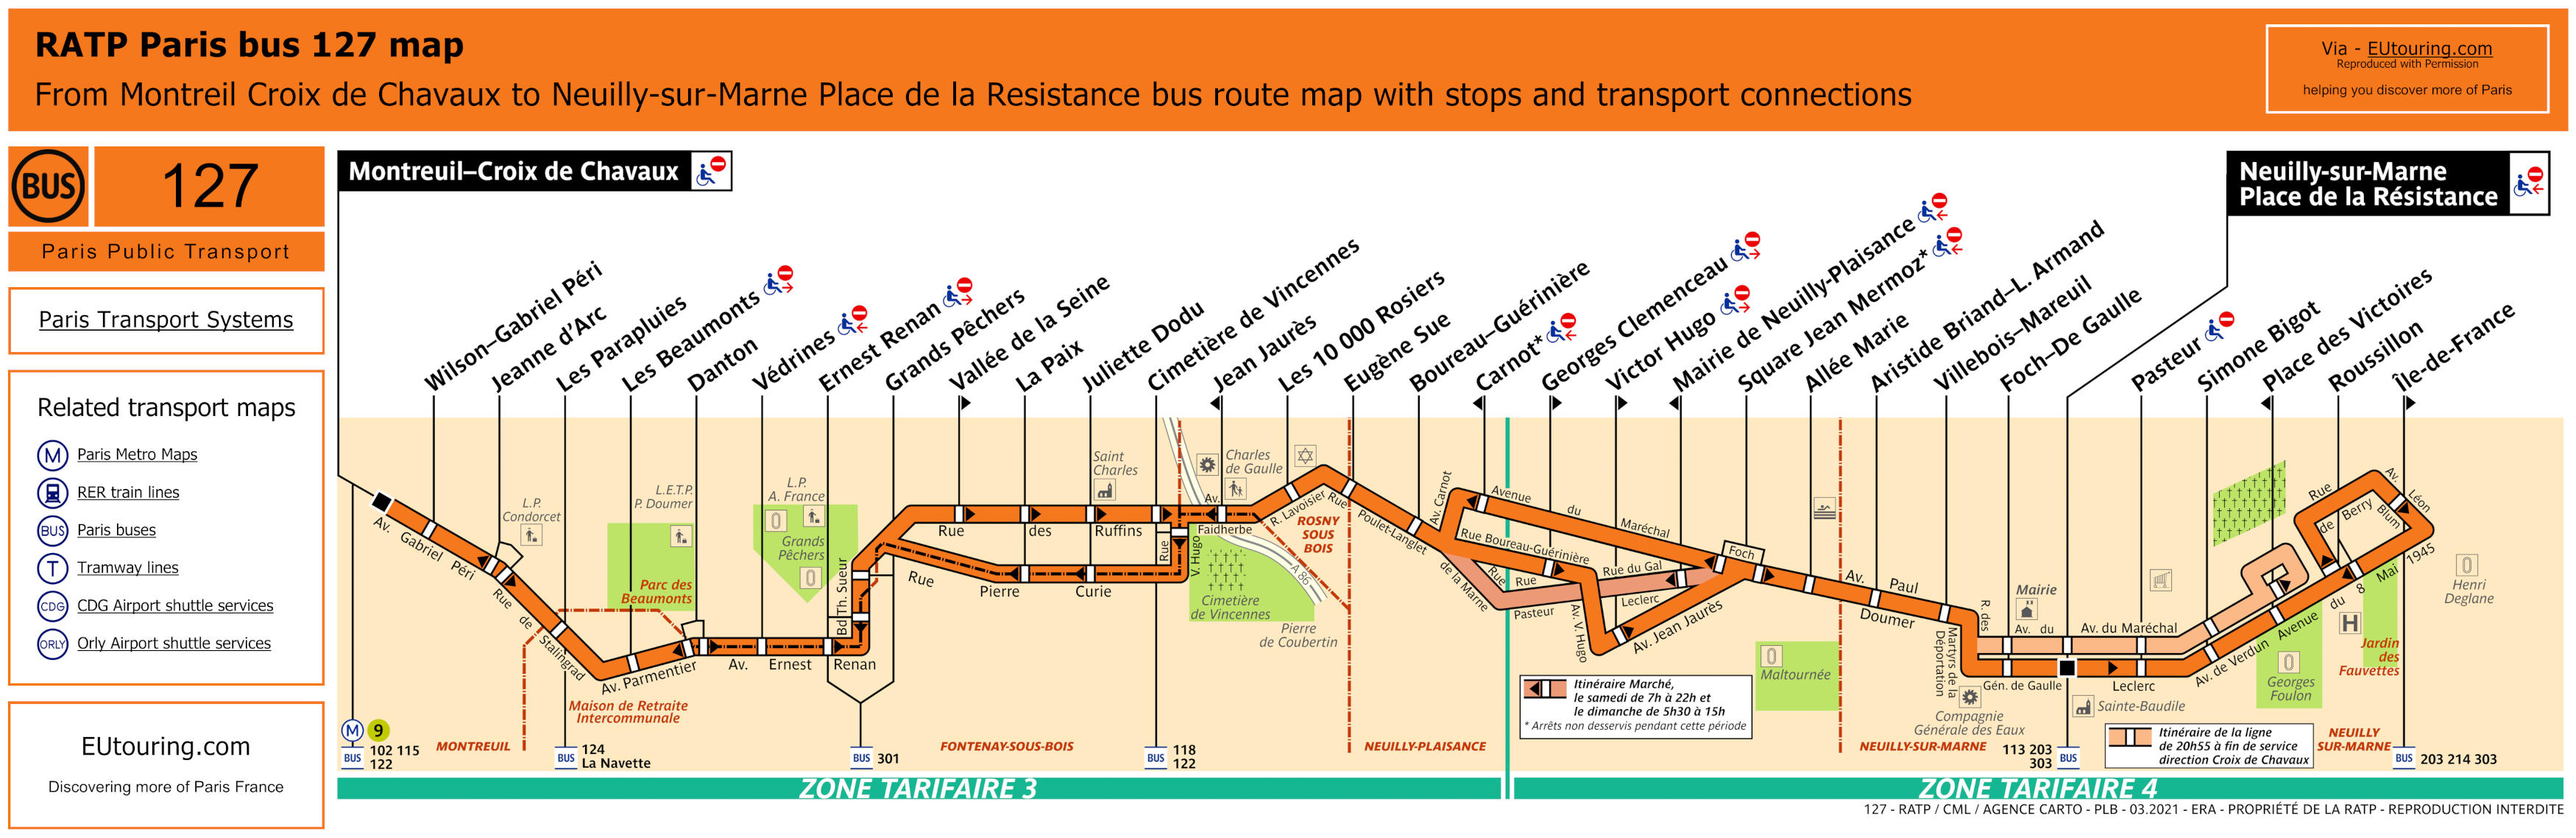 ratp route maps for paris bus lines 120 through to 129